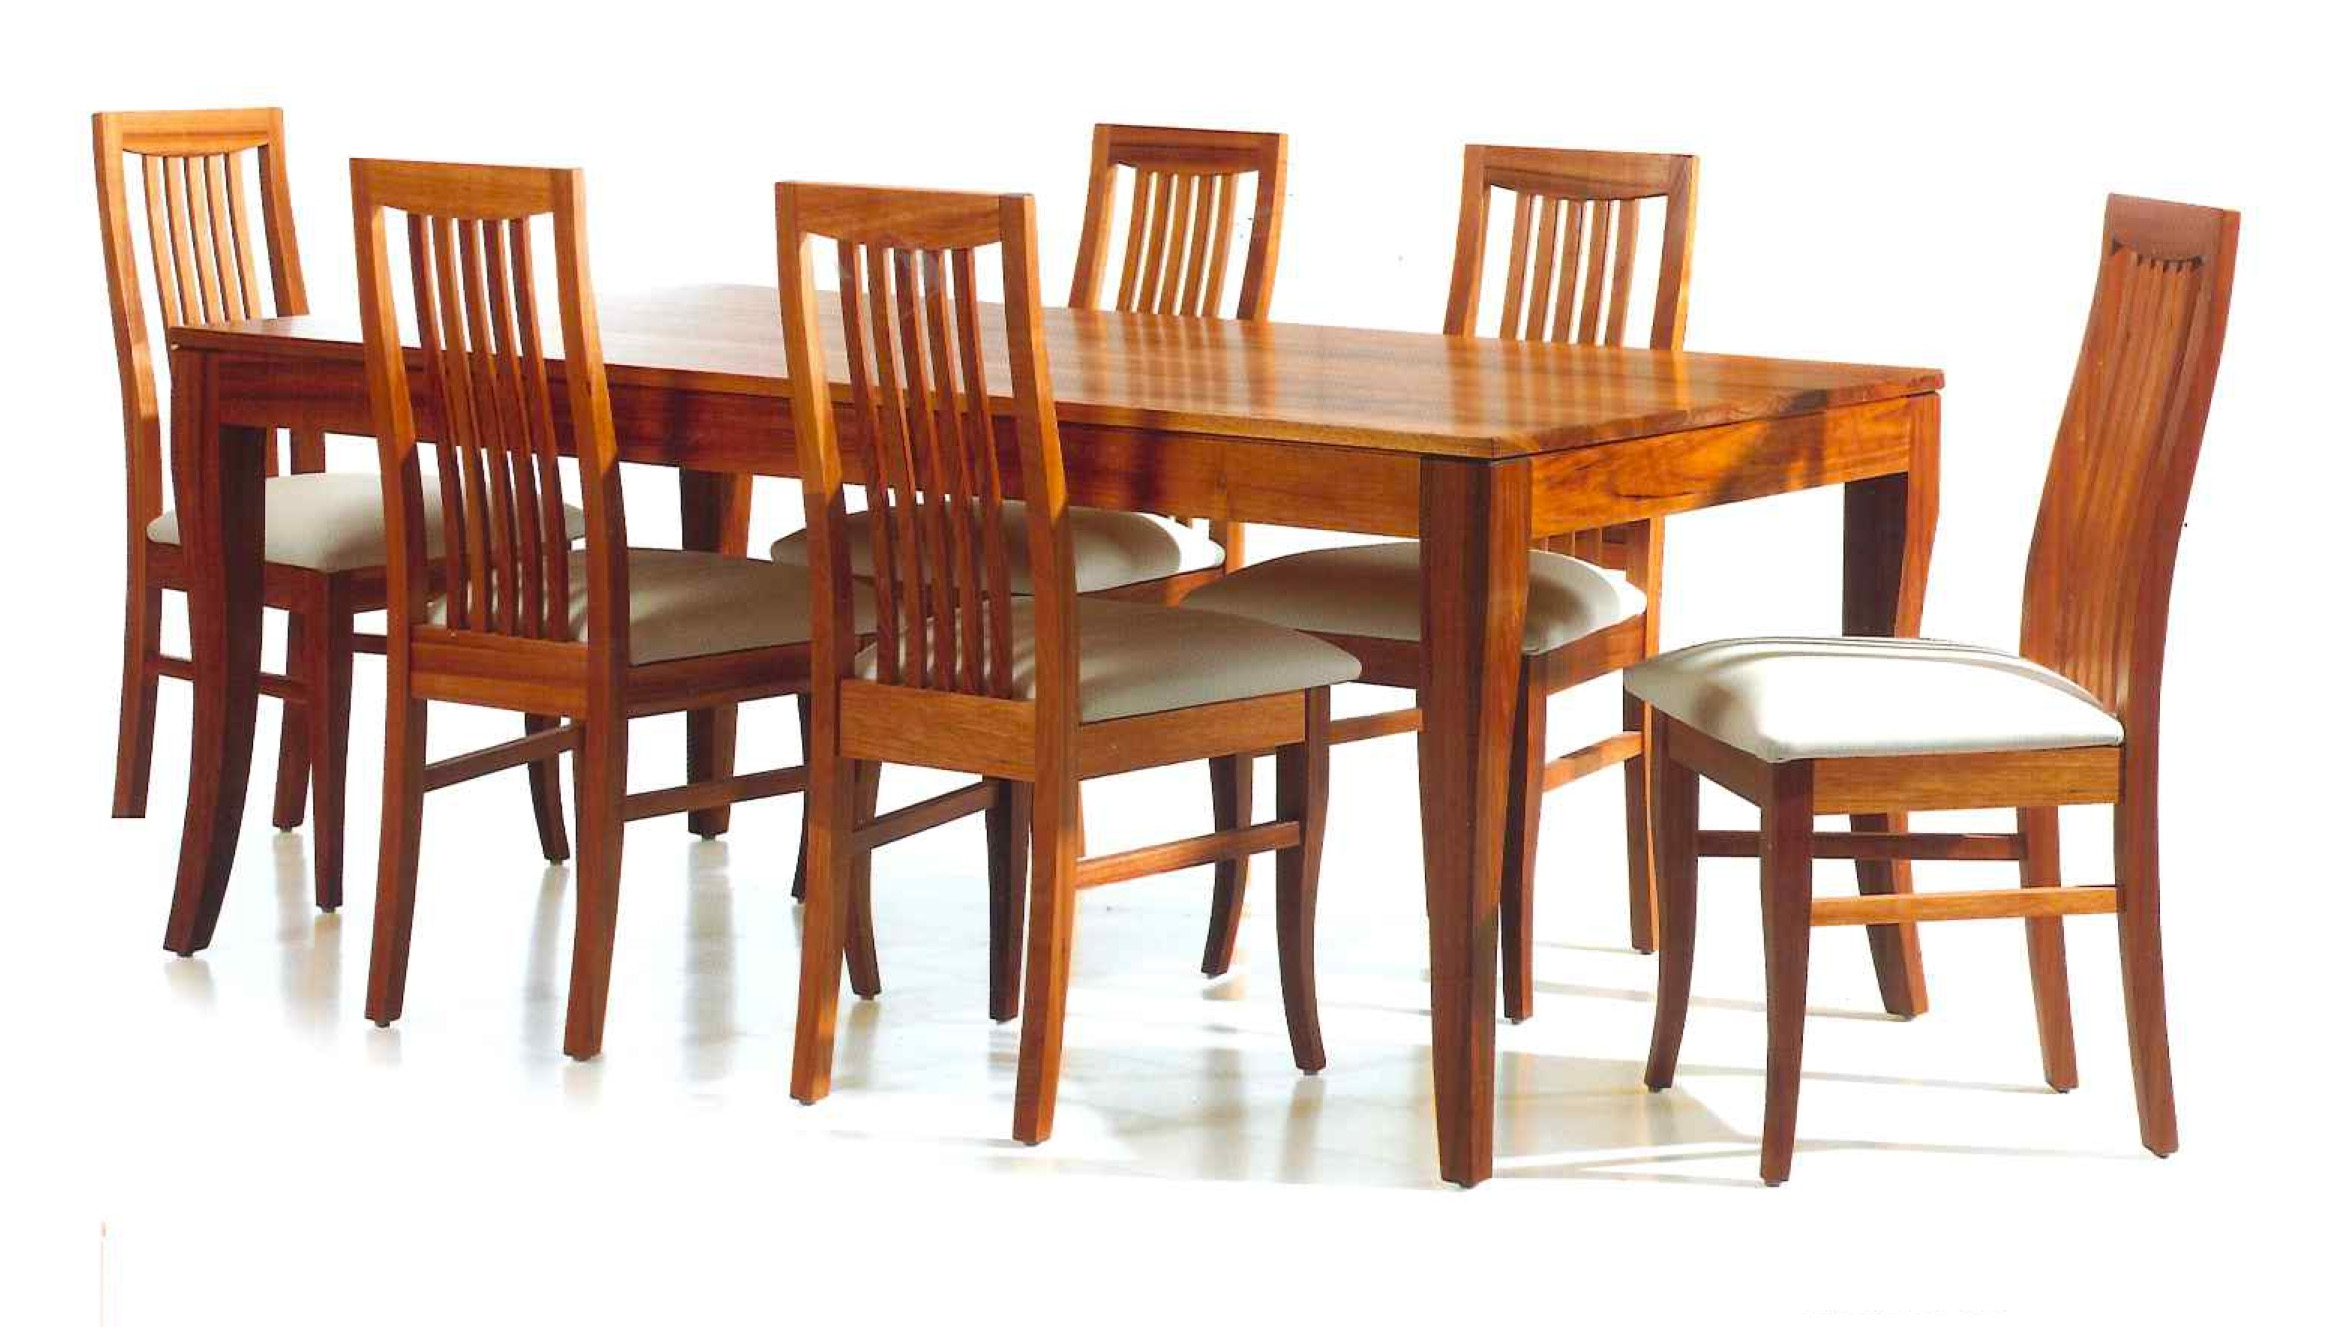 Dining Tables Chairs in Trendy Chair : Dining Table Chairs Top Dining Table Chairs Small Dining